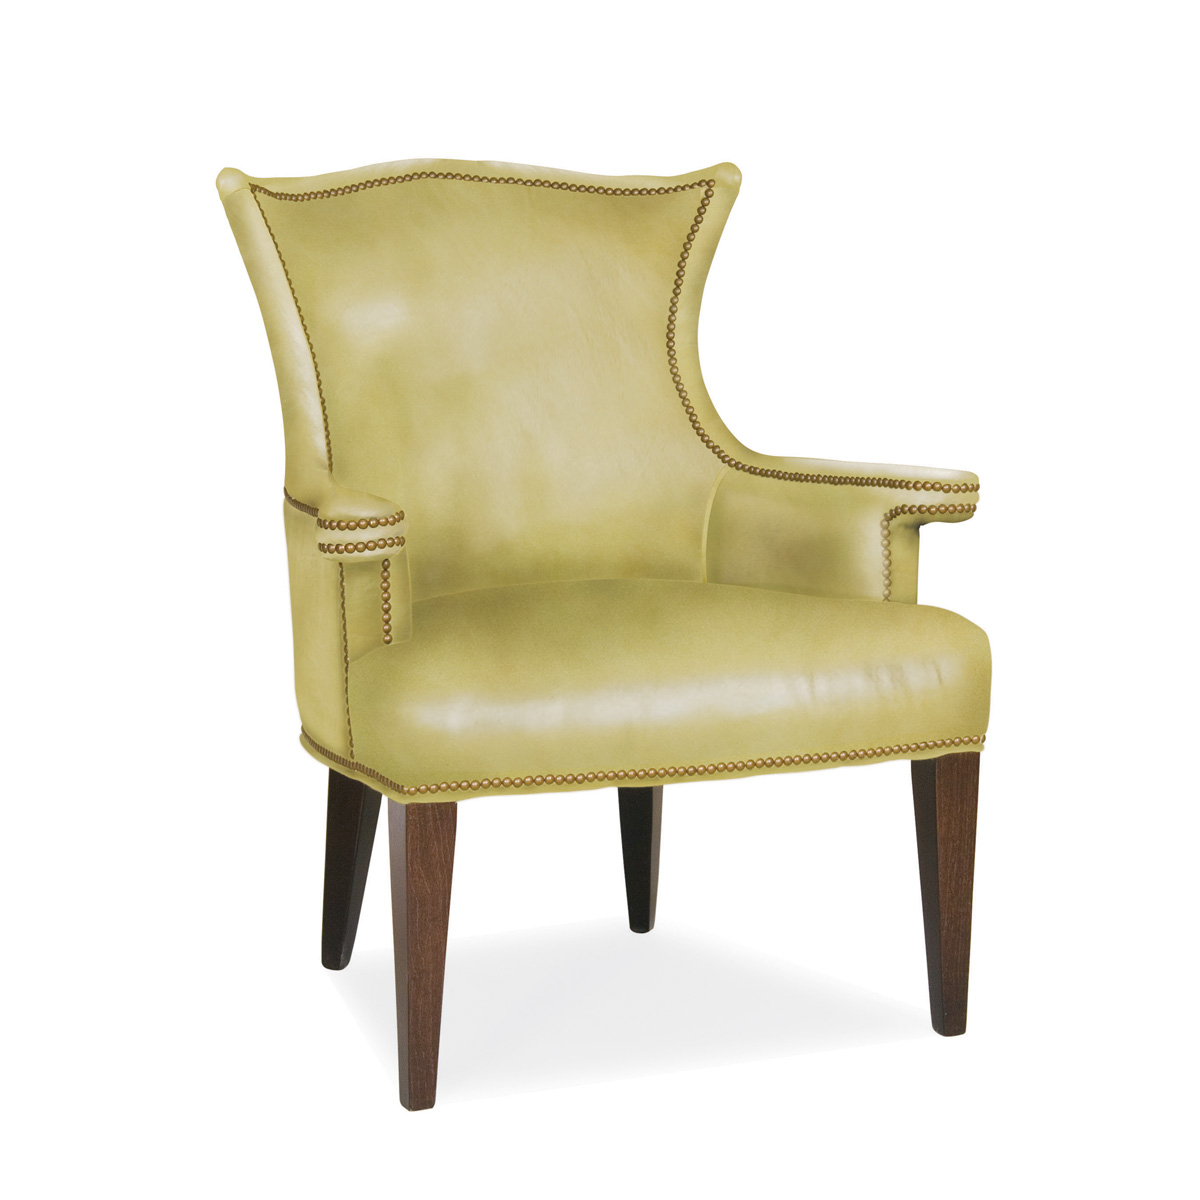 Dining_Chair_1297_with-arm_Lee_Industries.jpg